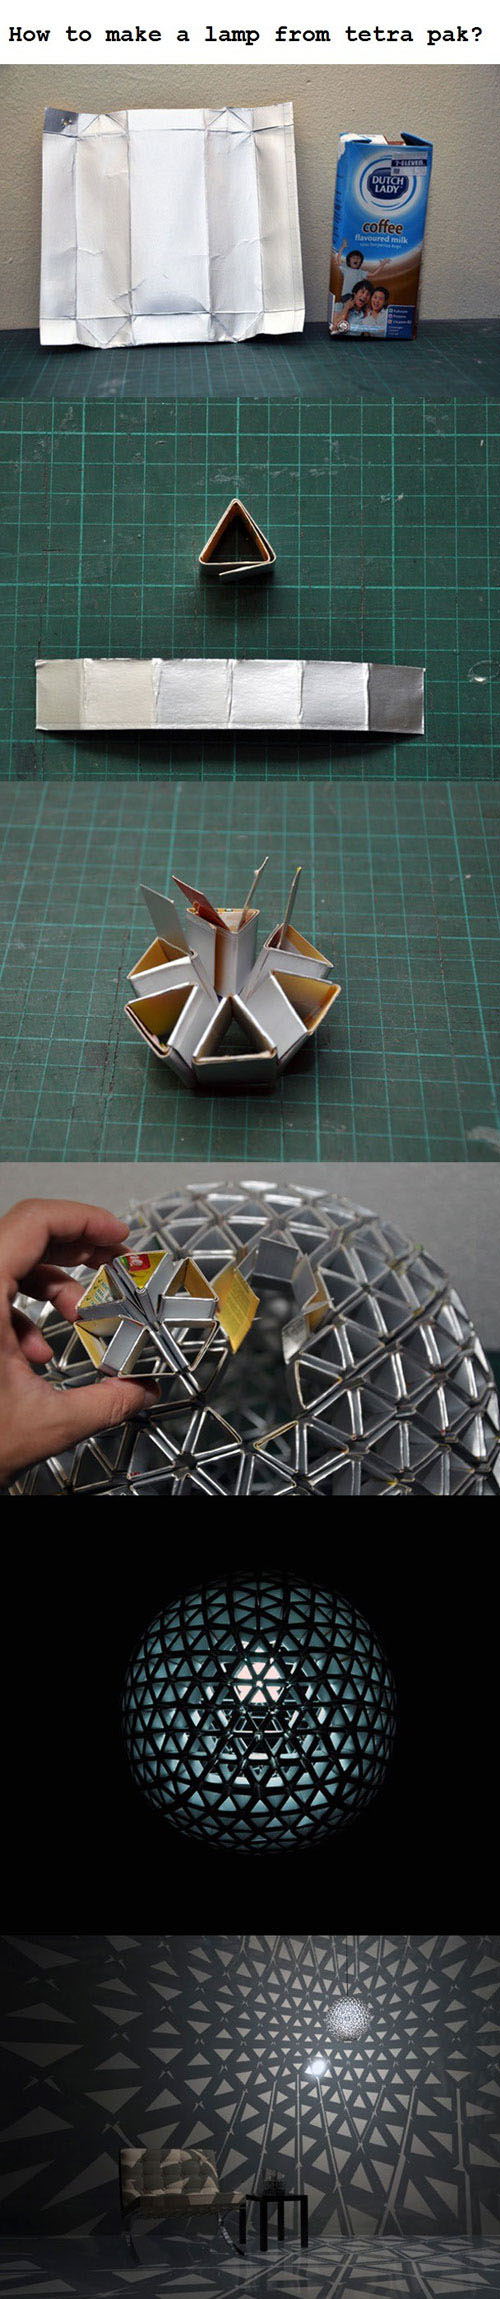 Creating a lamp from Tetra Pak